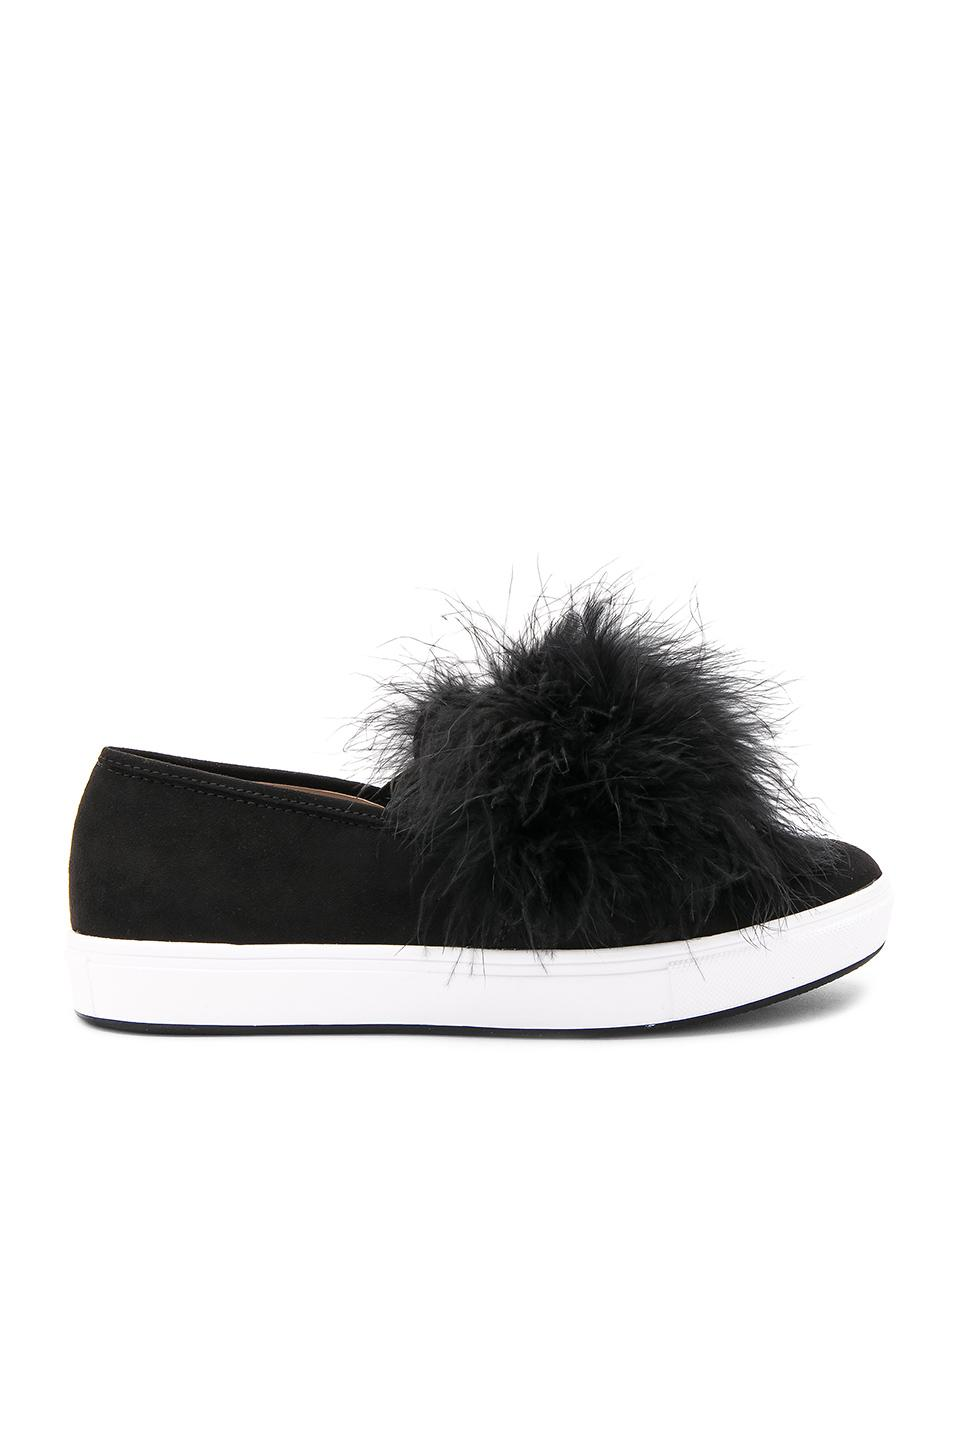 318bb625f6a Style Name  Steve Madden Breeze Faux Fur Pom Sneaker (Women). Style Number   5411779. Available in stores.